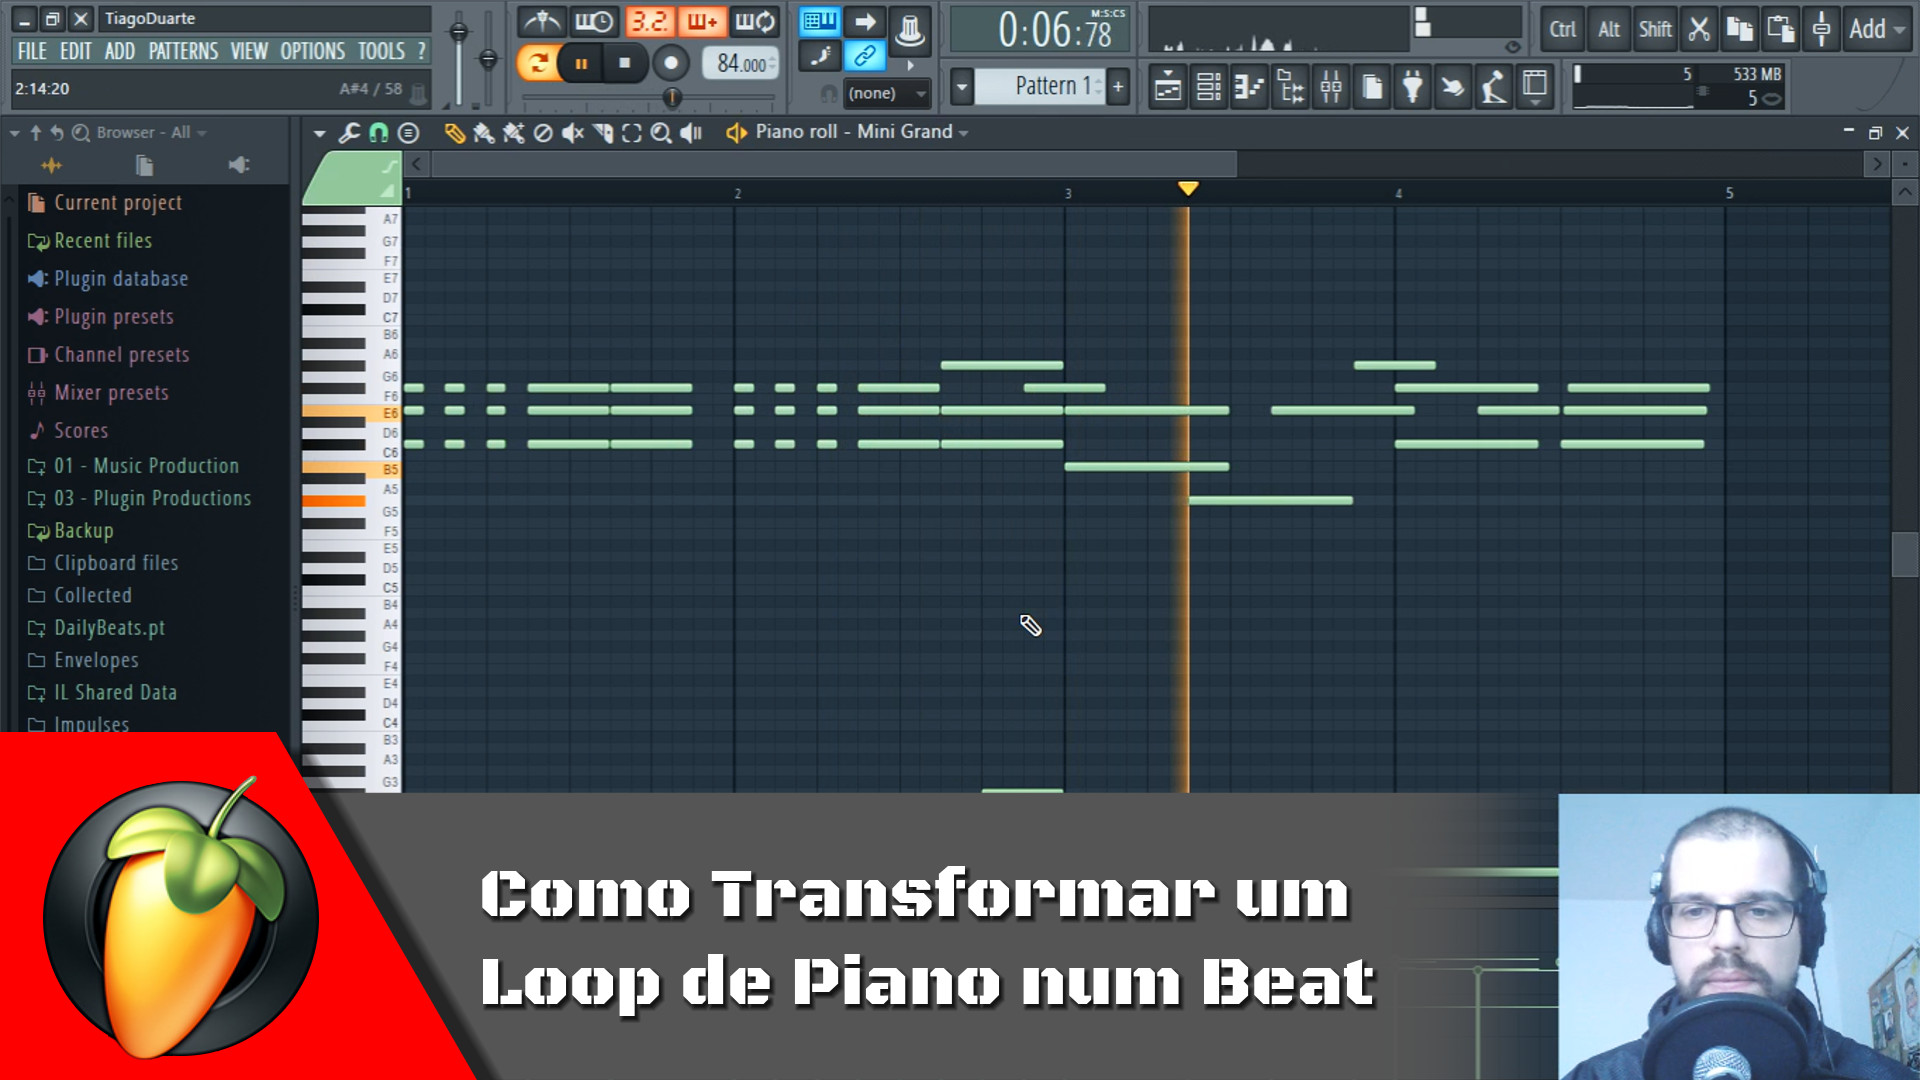 Como Transformar um Loop de Piano num Beat